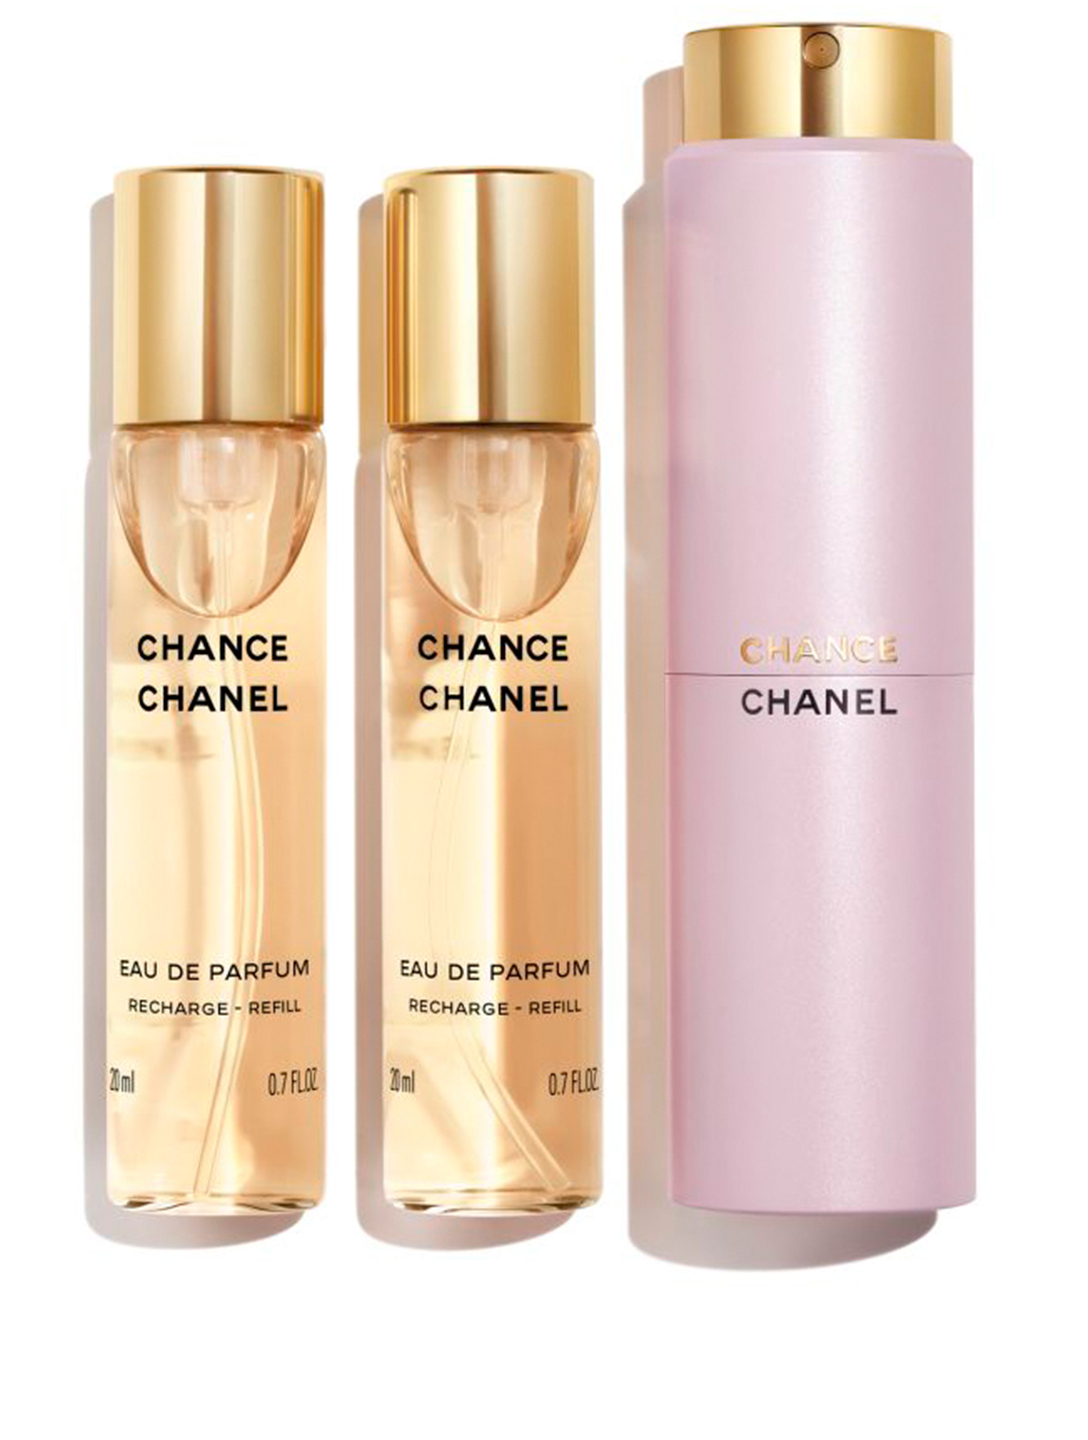 CHANEL Eau de parfum Twist and Spray CHANEL